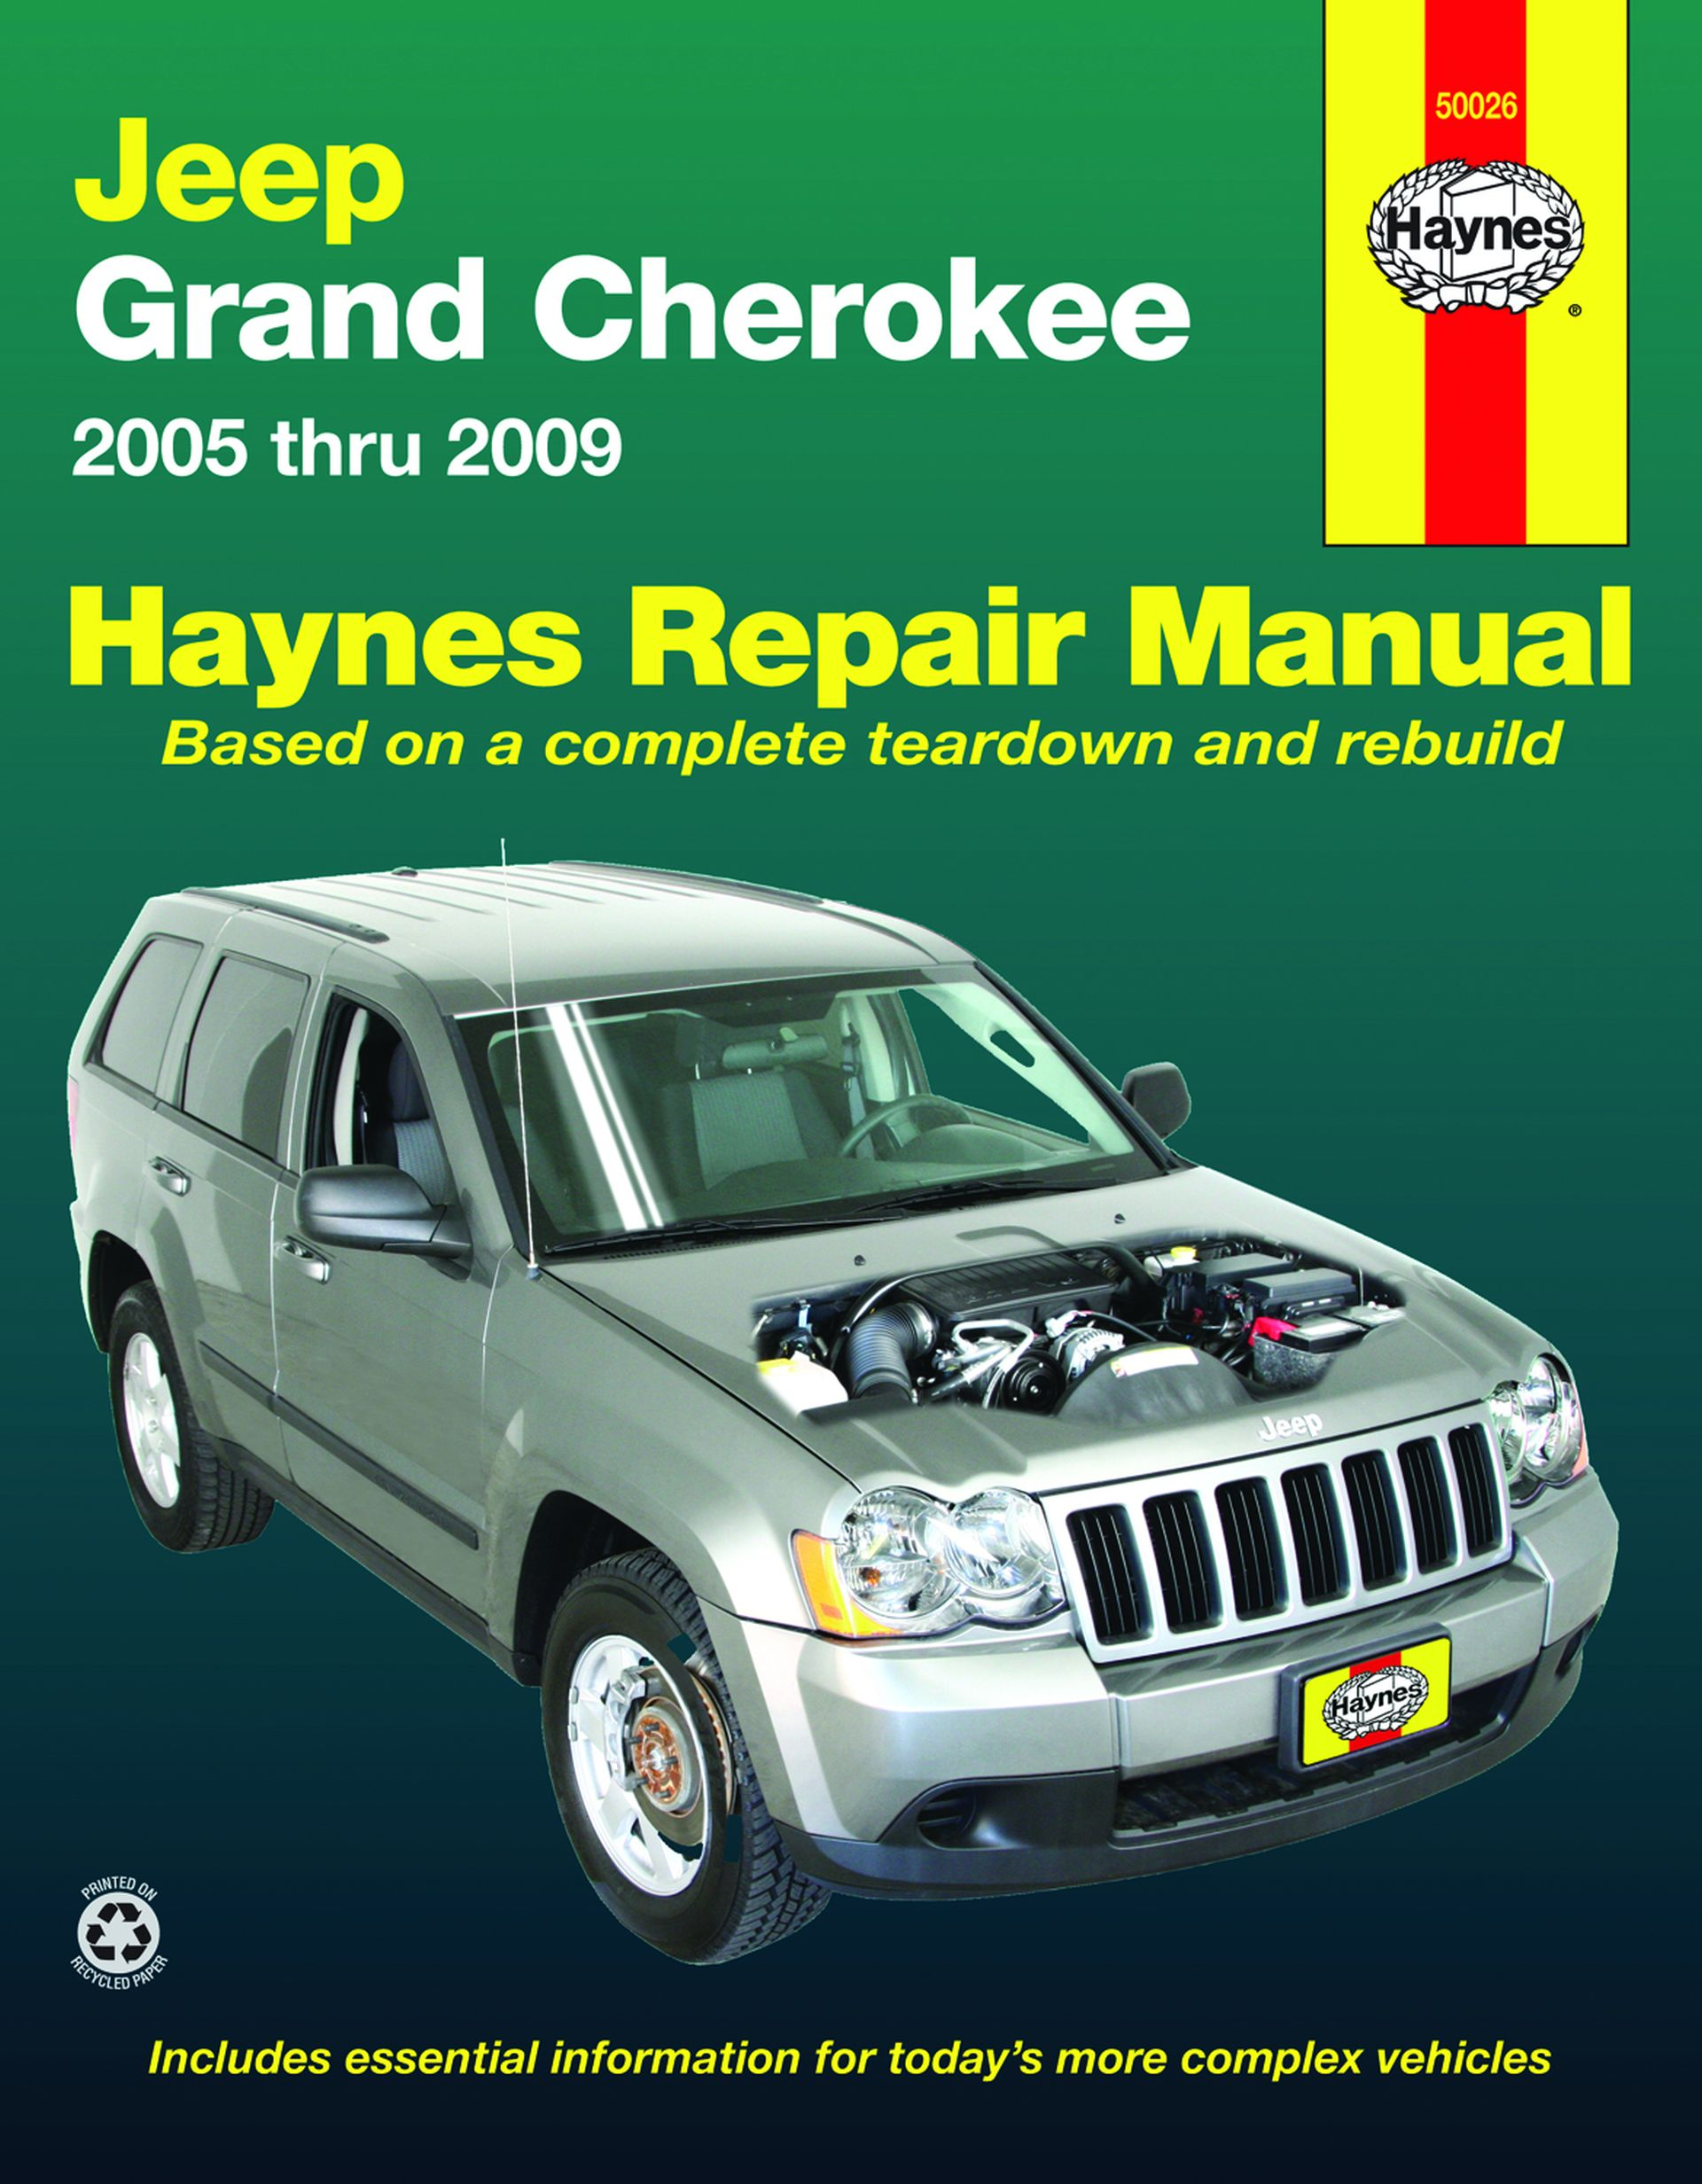 Haynes Owners + Workshop Car Manual Jeep Grand Cherokee Handbook (05 - 09) 50026